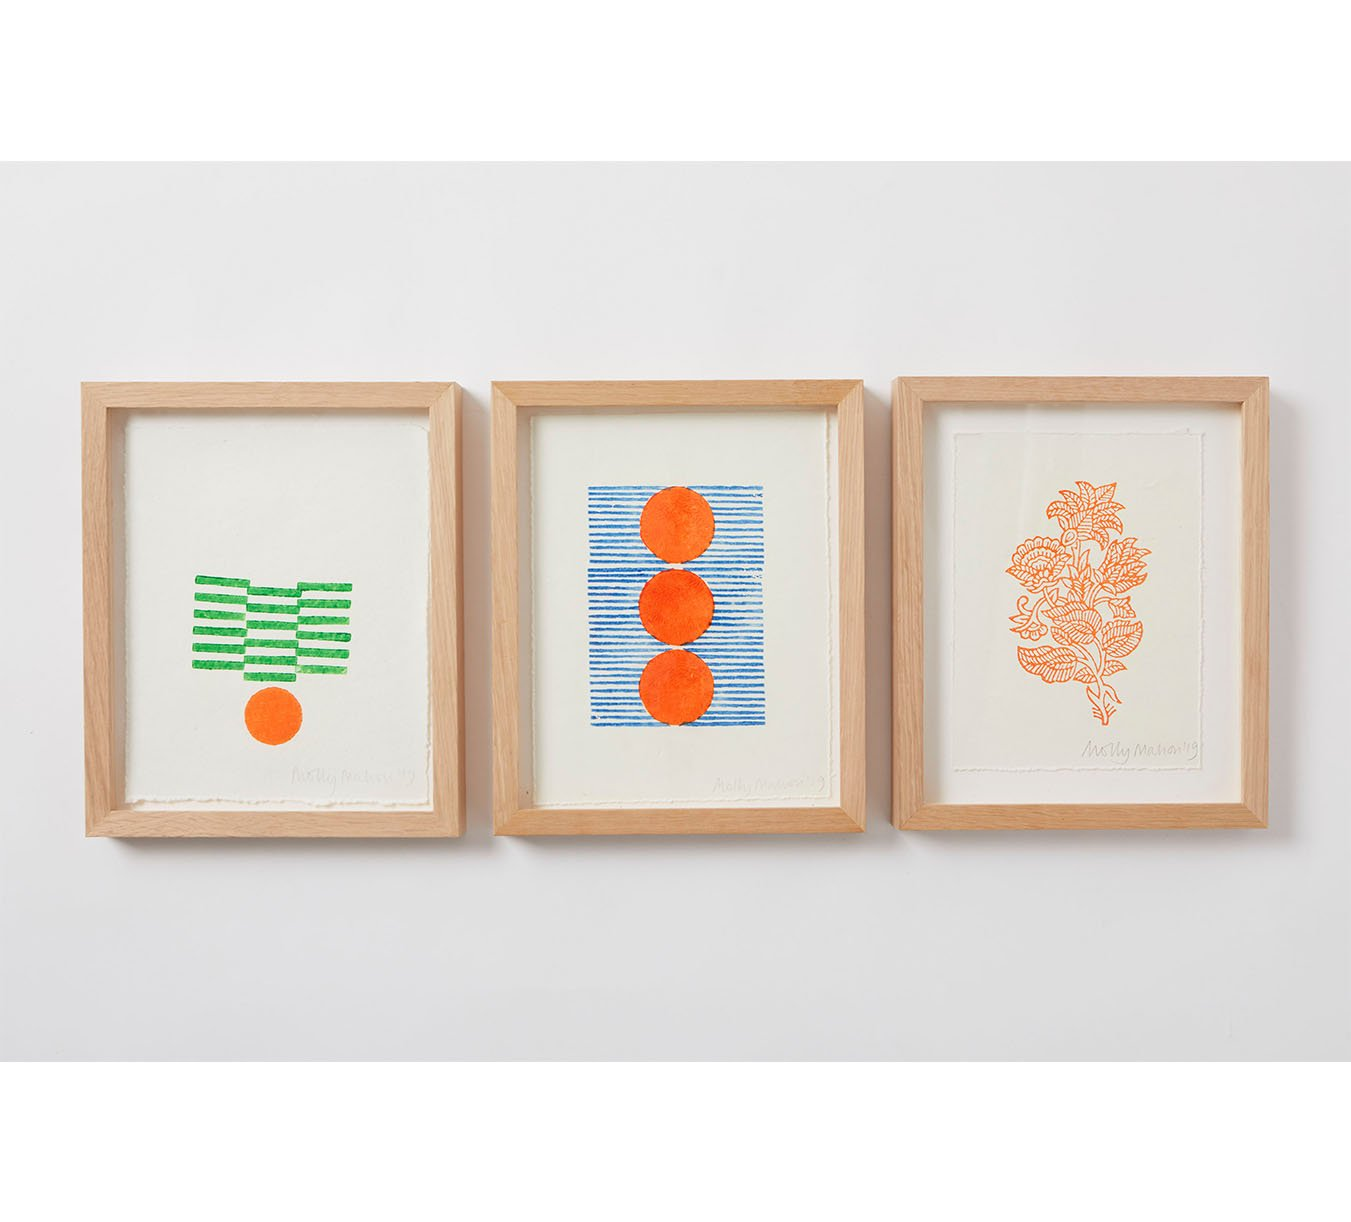 Framed - Cotton Paper Print - Trio 8